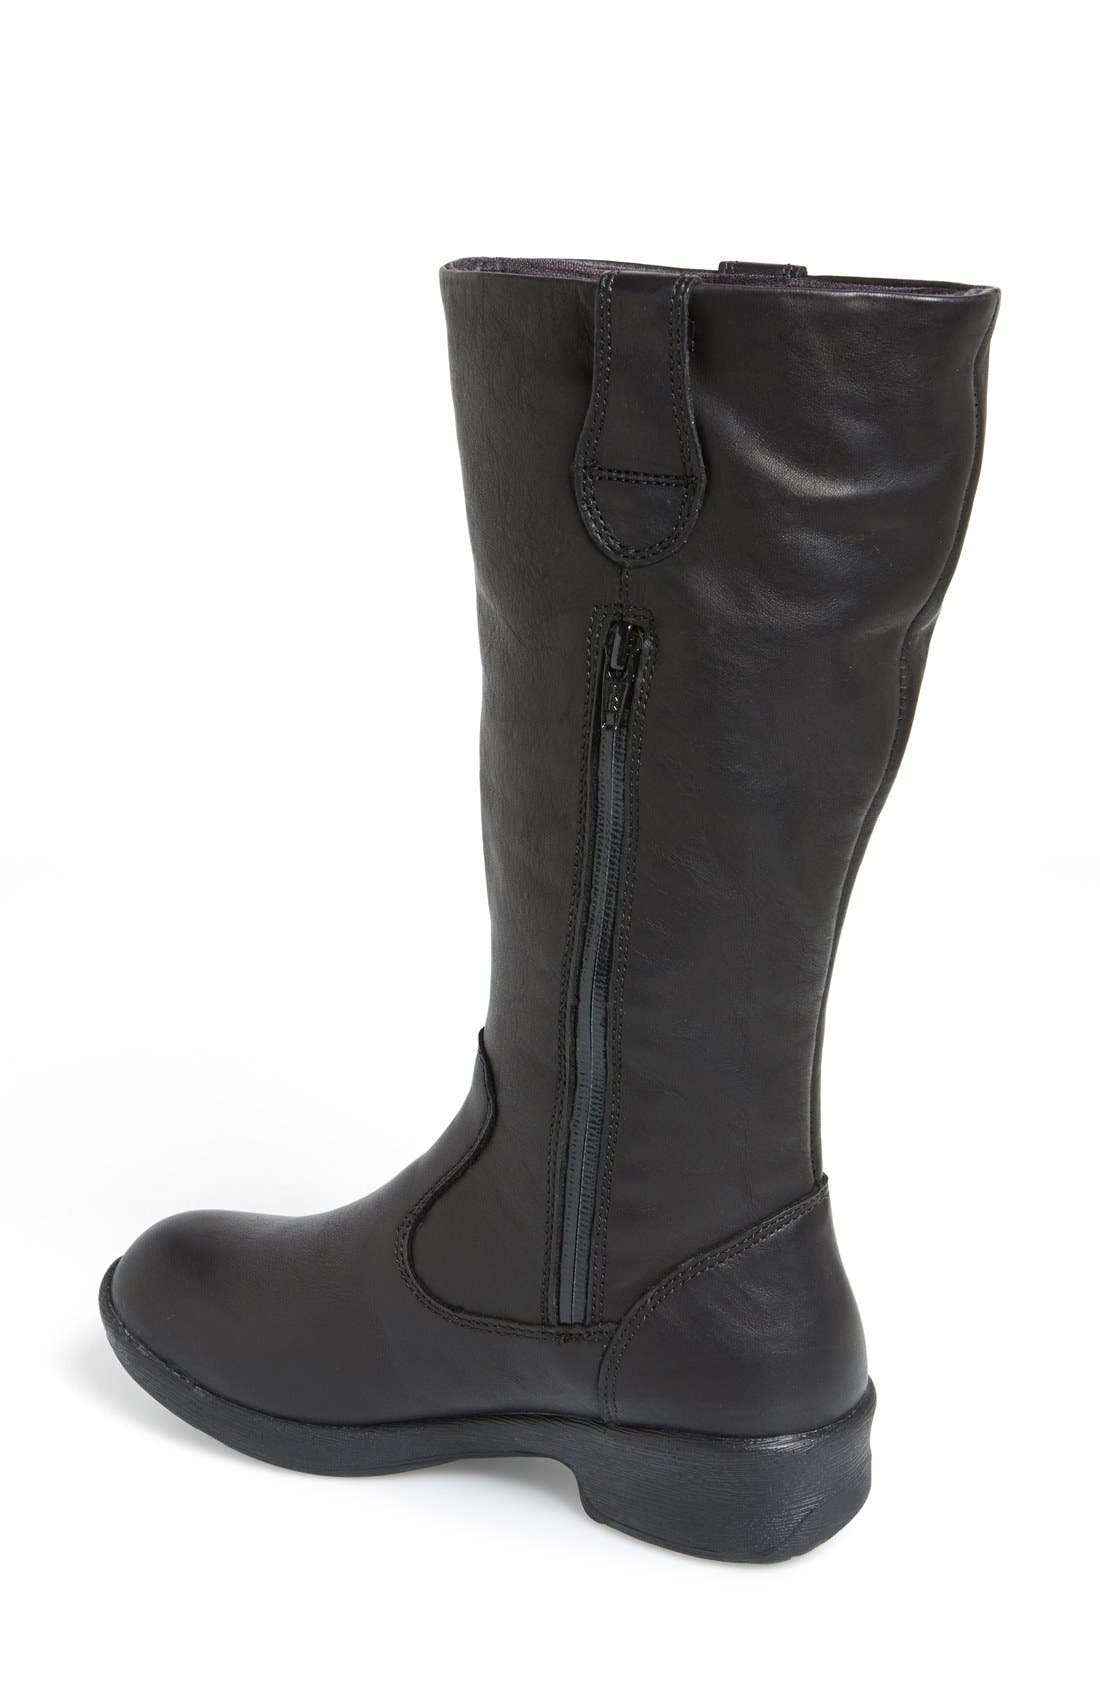 KEEN,                             'Tyretread' Waterproof Riding Boot,                             Alternate thumbnail 2, color,                             001